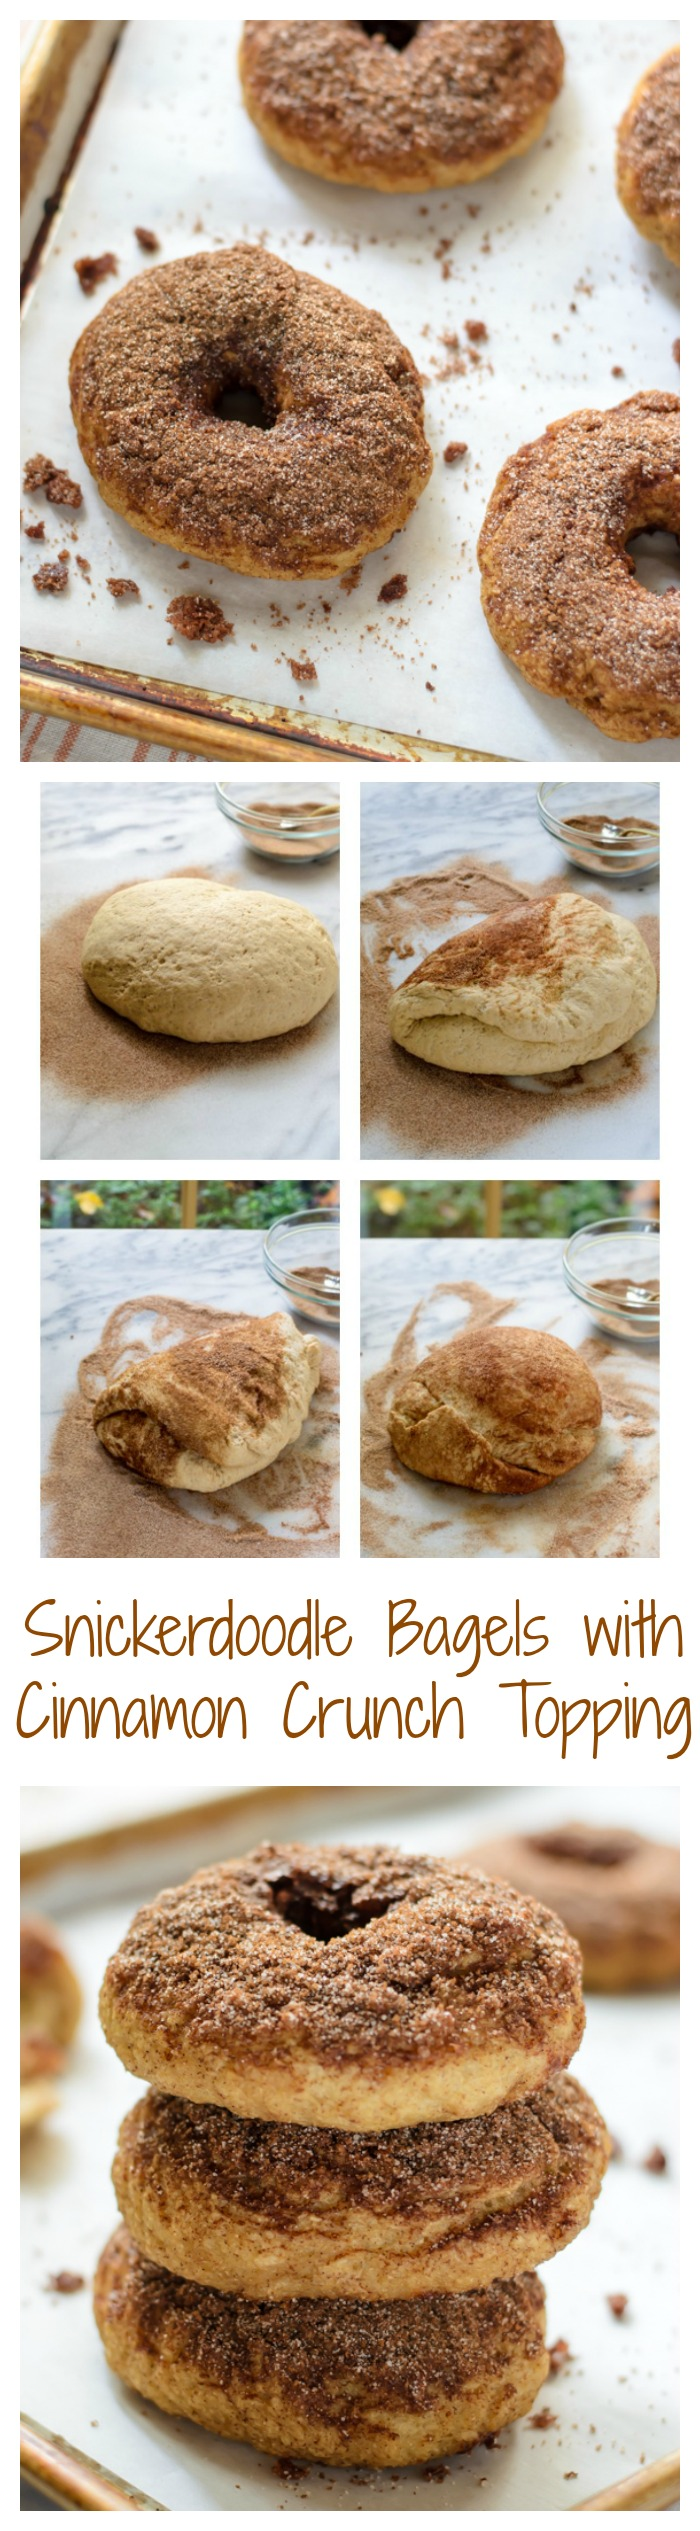 Snickerdoodle Bagels with Cinnamon Crunch Topping // Well-Plated